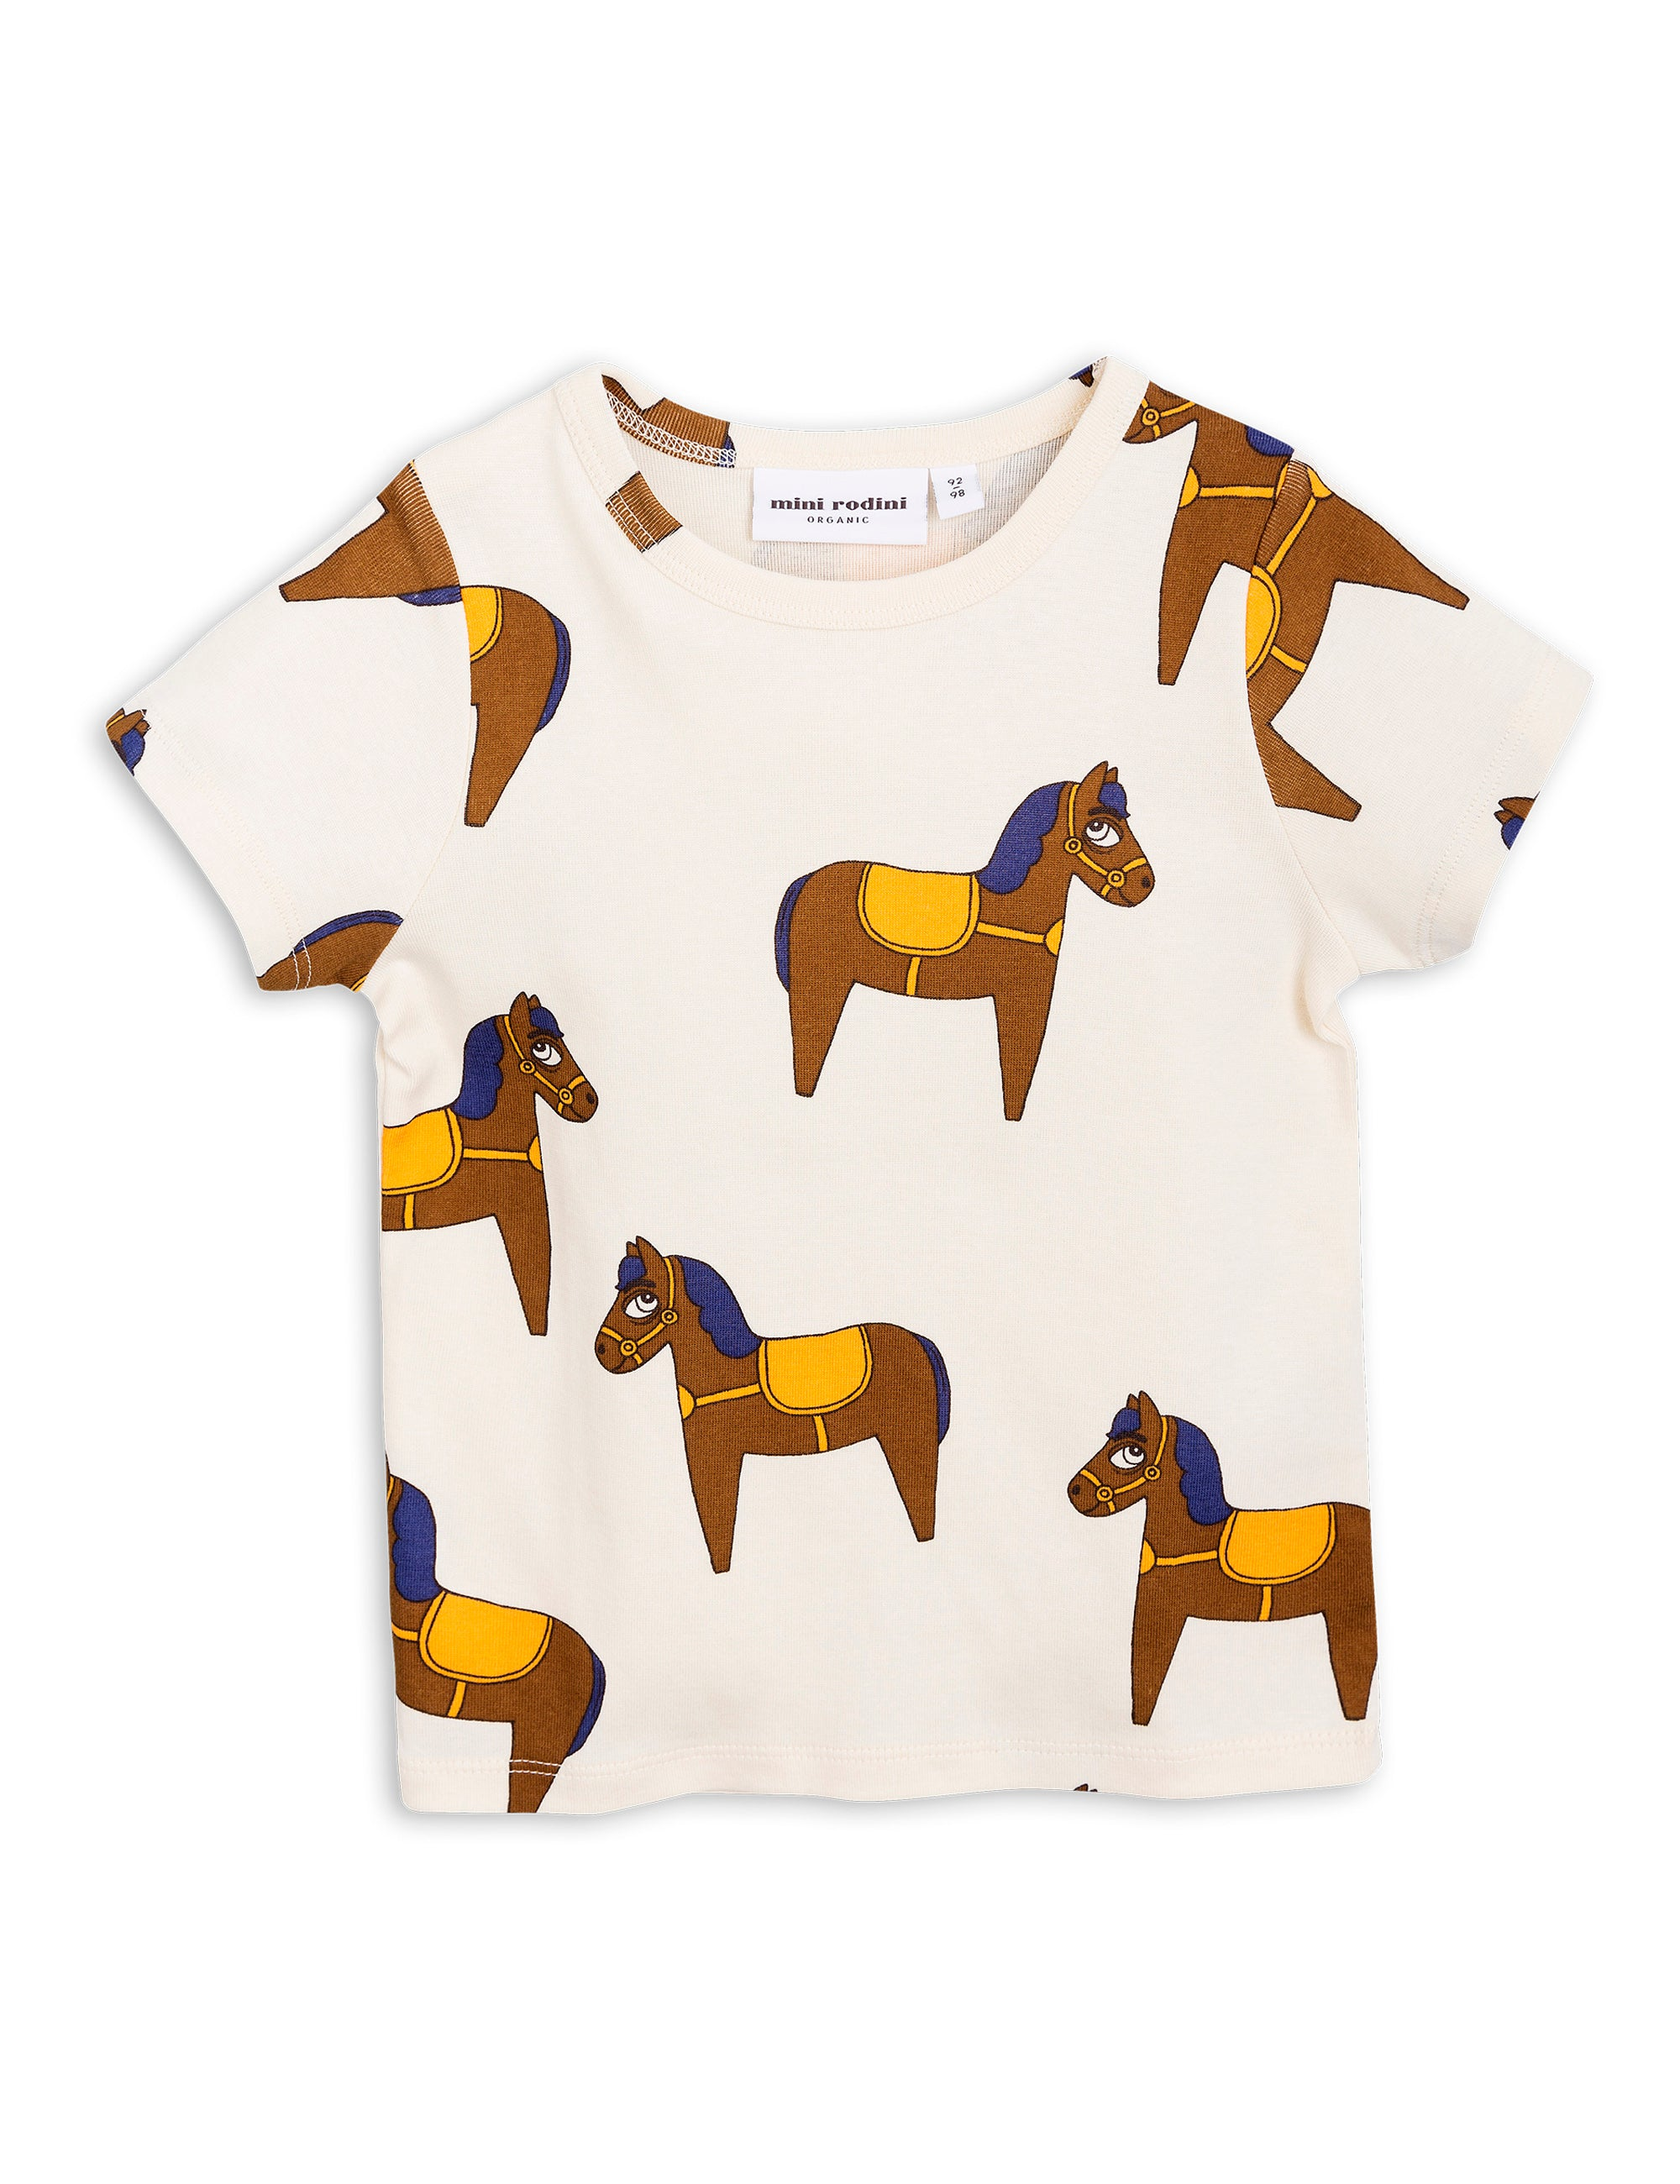 MINI RODINI - Horse Short Sleeve Tee / Yellow